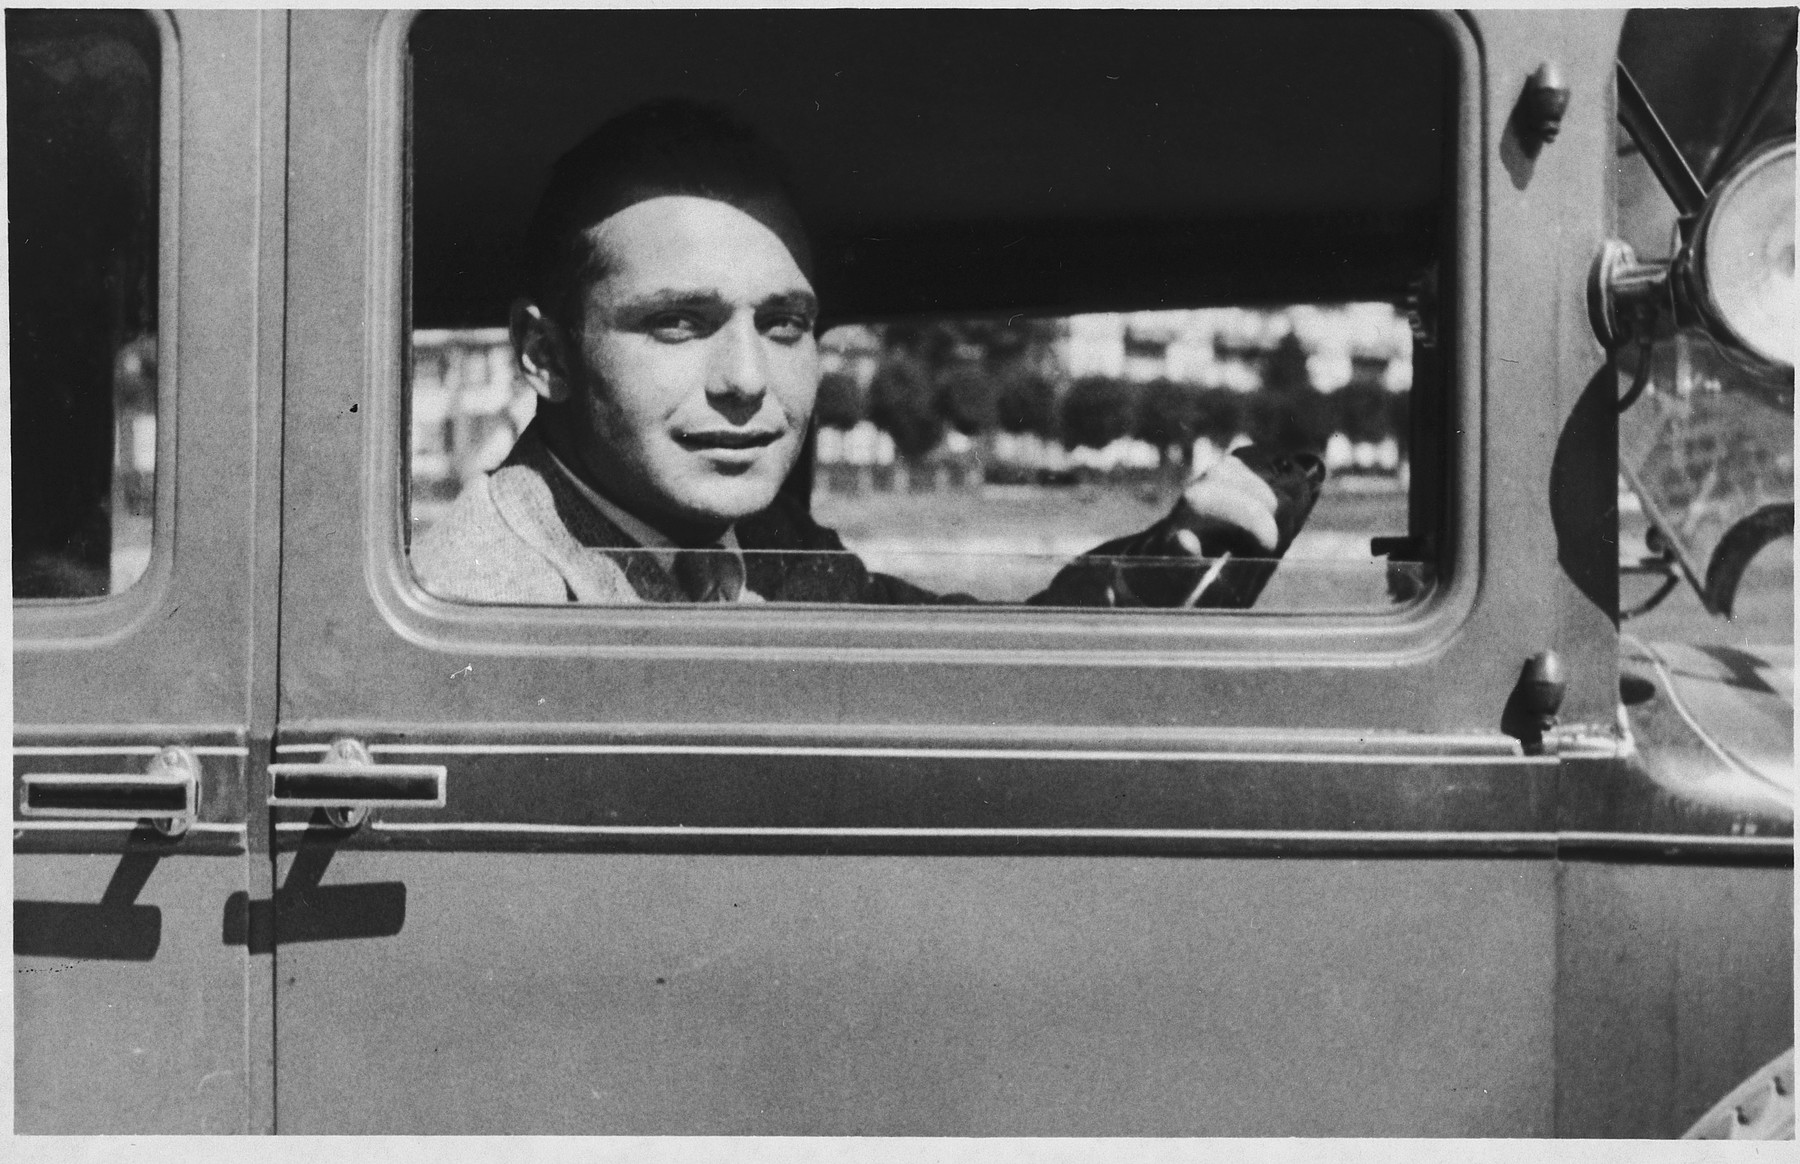 Portrait of Jewish athlete, Ota Margolius, looking out the window of an automobile.